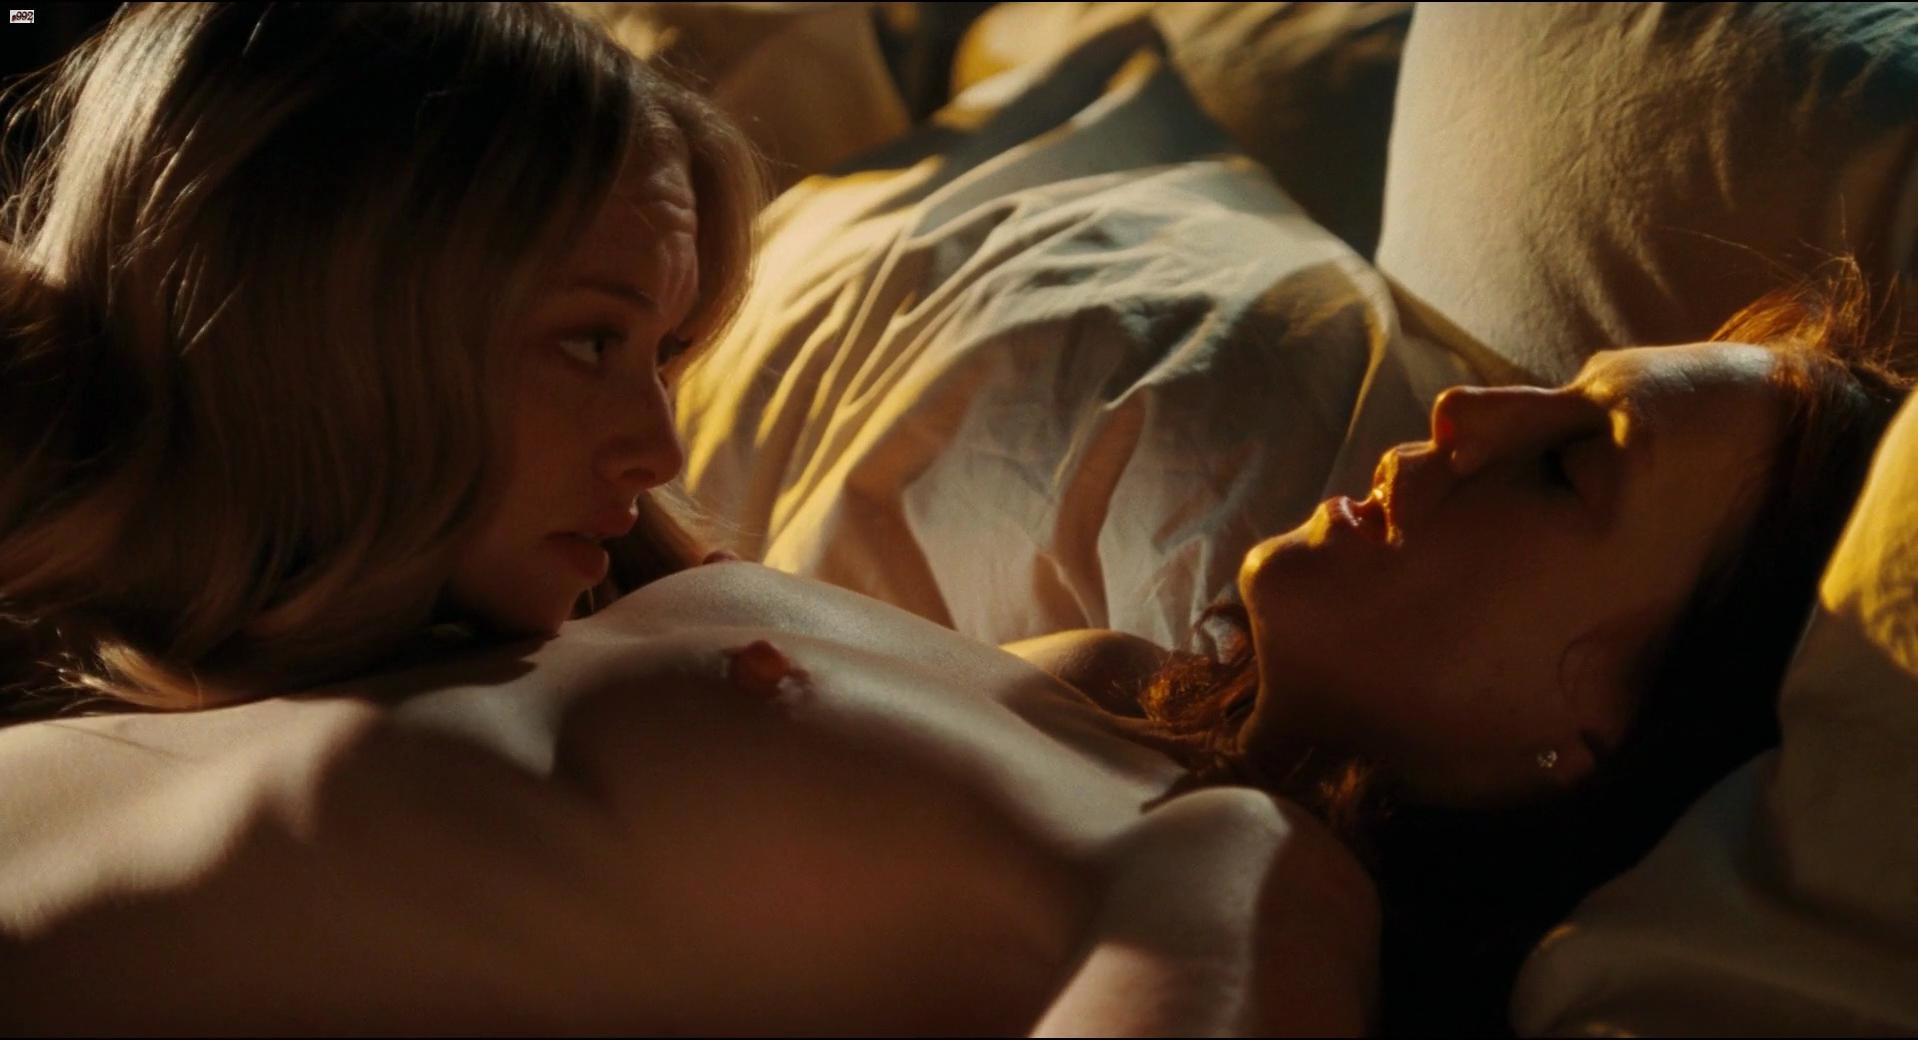 Amanda seyfried nude sex scene in chloe scandalplanetcom 5